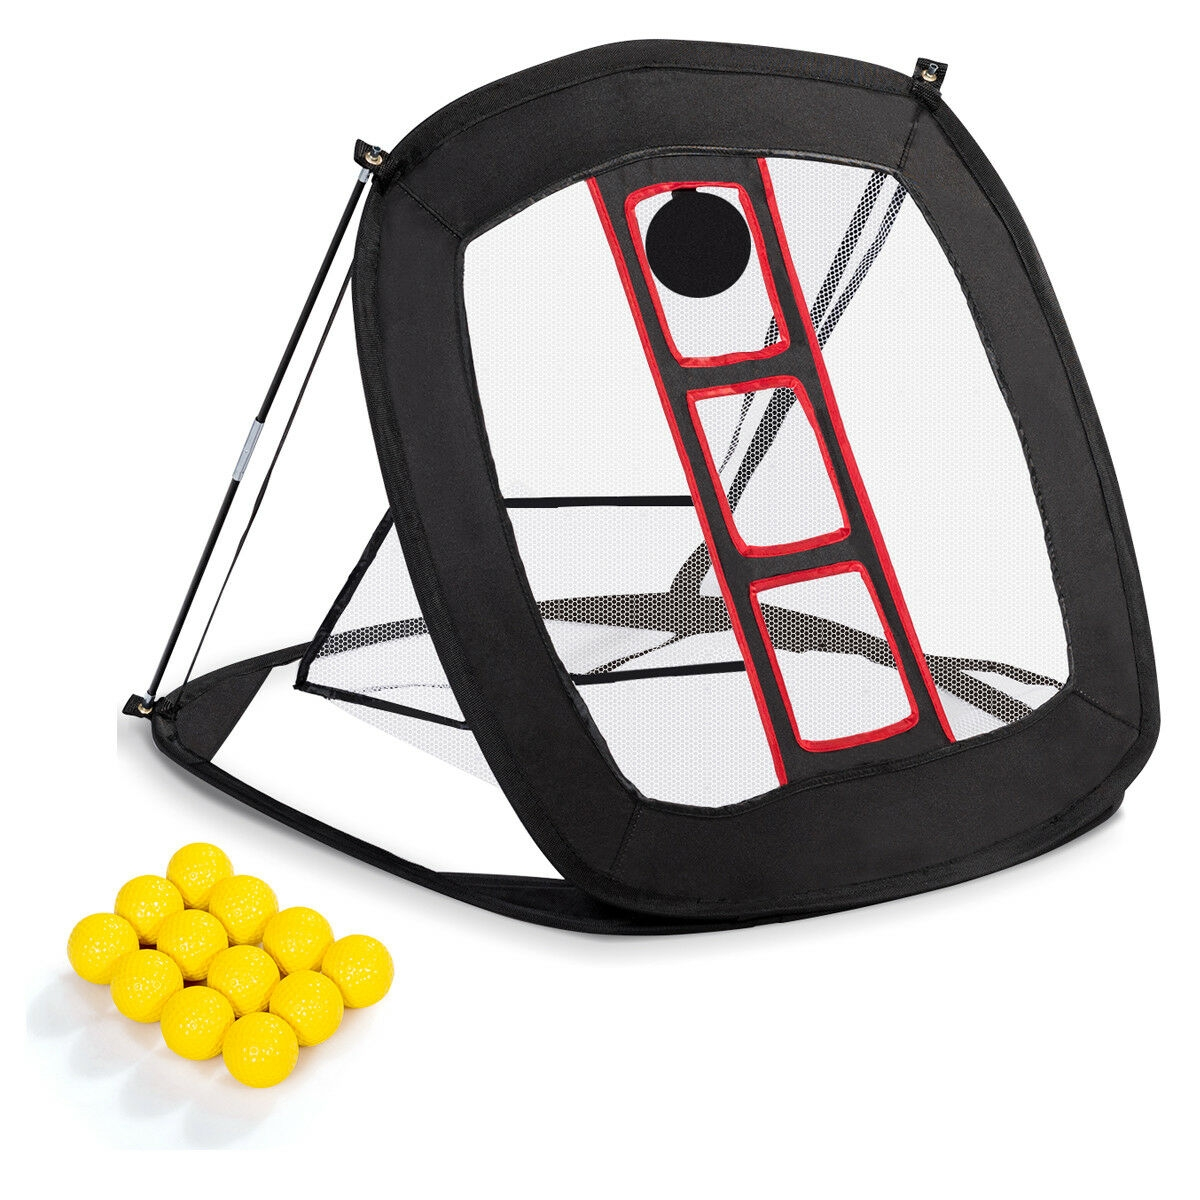 Portable Pop Up Golf Chipping Net with 12 Training Balls